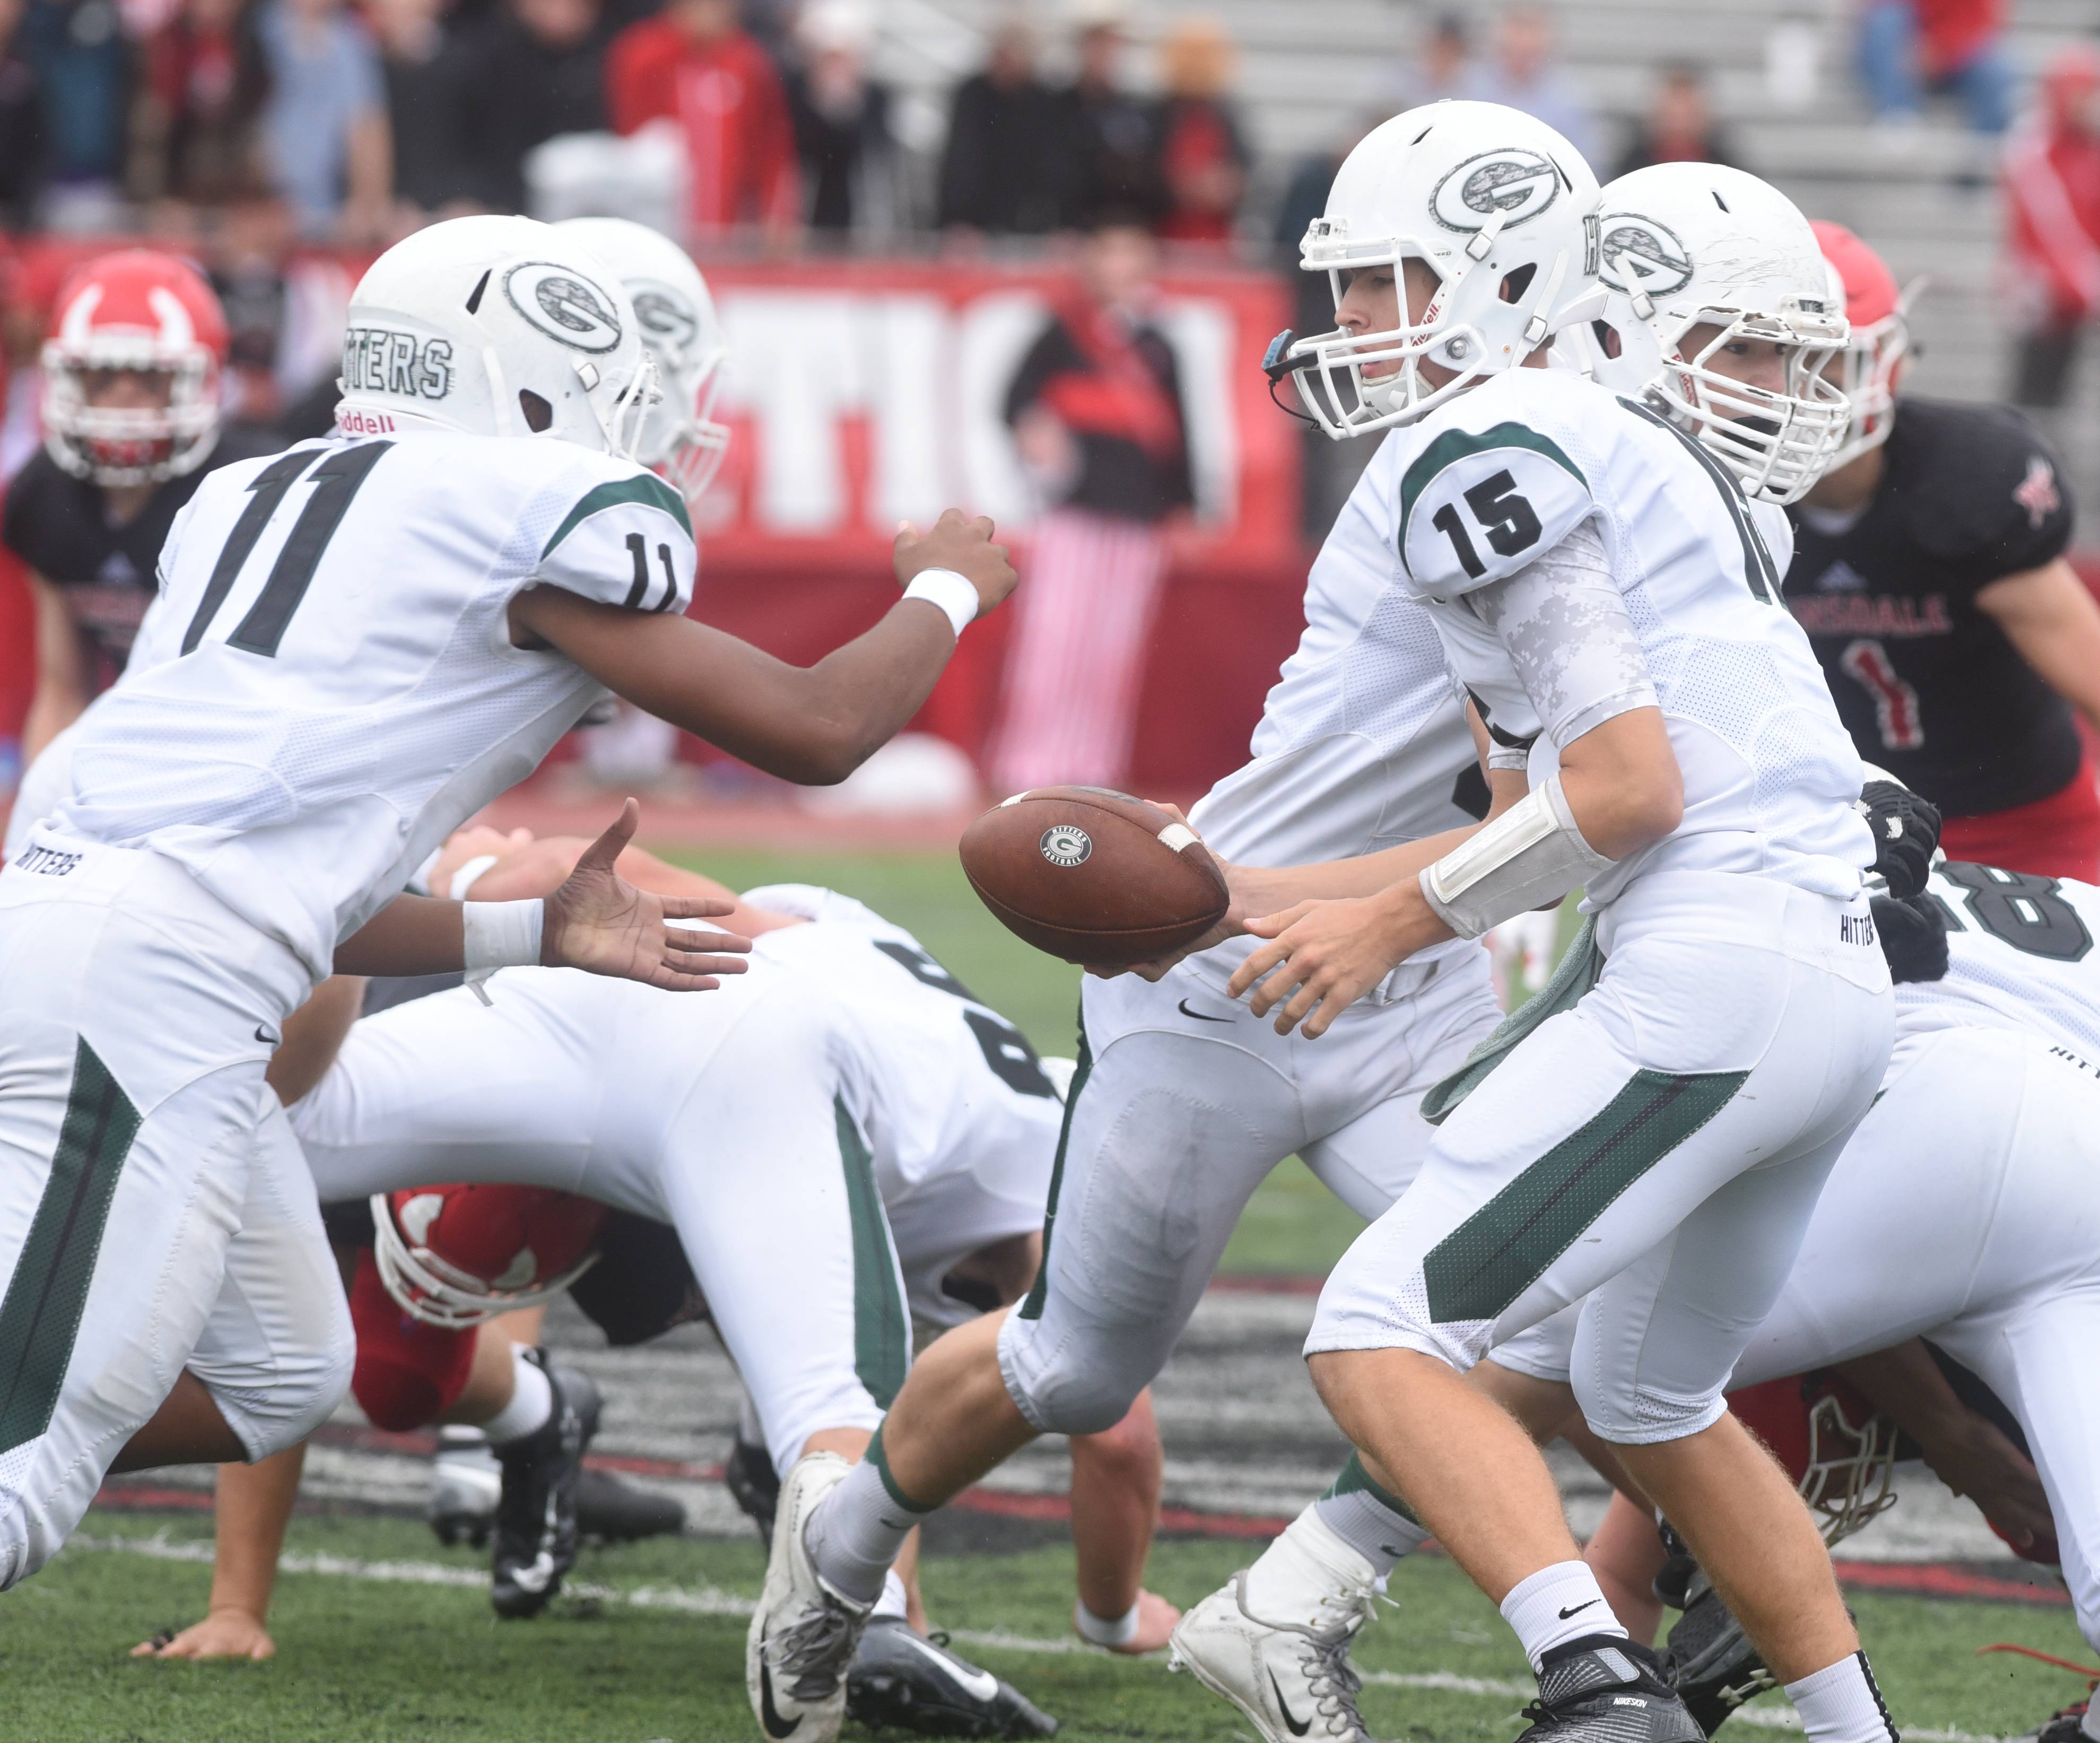 Week -6- Photos from the Glenbard West vs. Hinsdale Central football game on Saturday, Oct. 1, in Hinsdale.